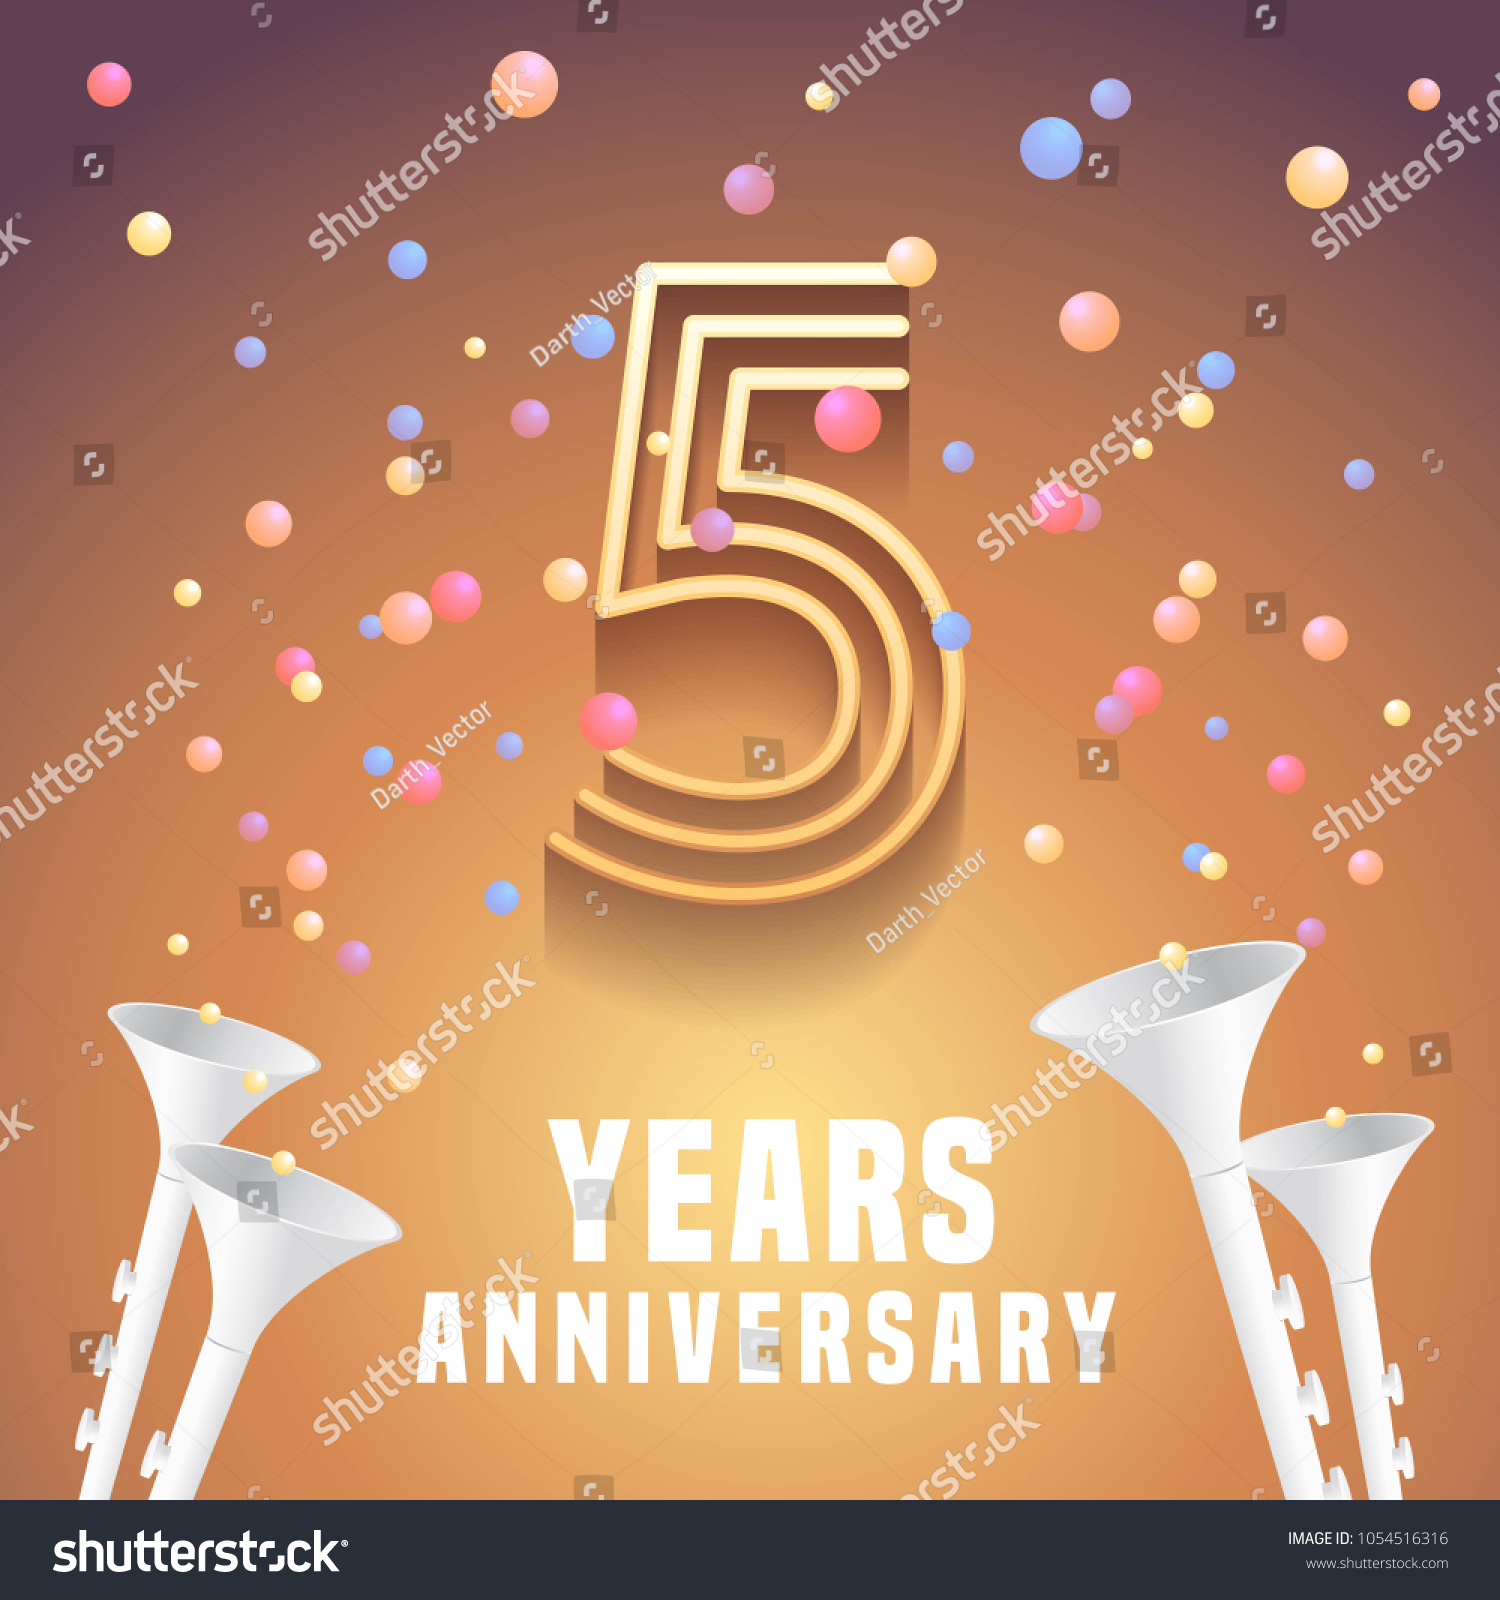 5 years anniversary vector icon symbol stock vector 1054516316 5 years anniversary vector icon symbol graphic design element with festive background and horns biocorpaavc Gallery